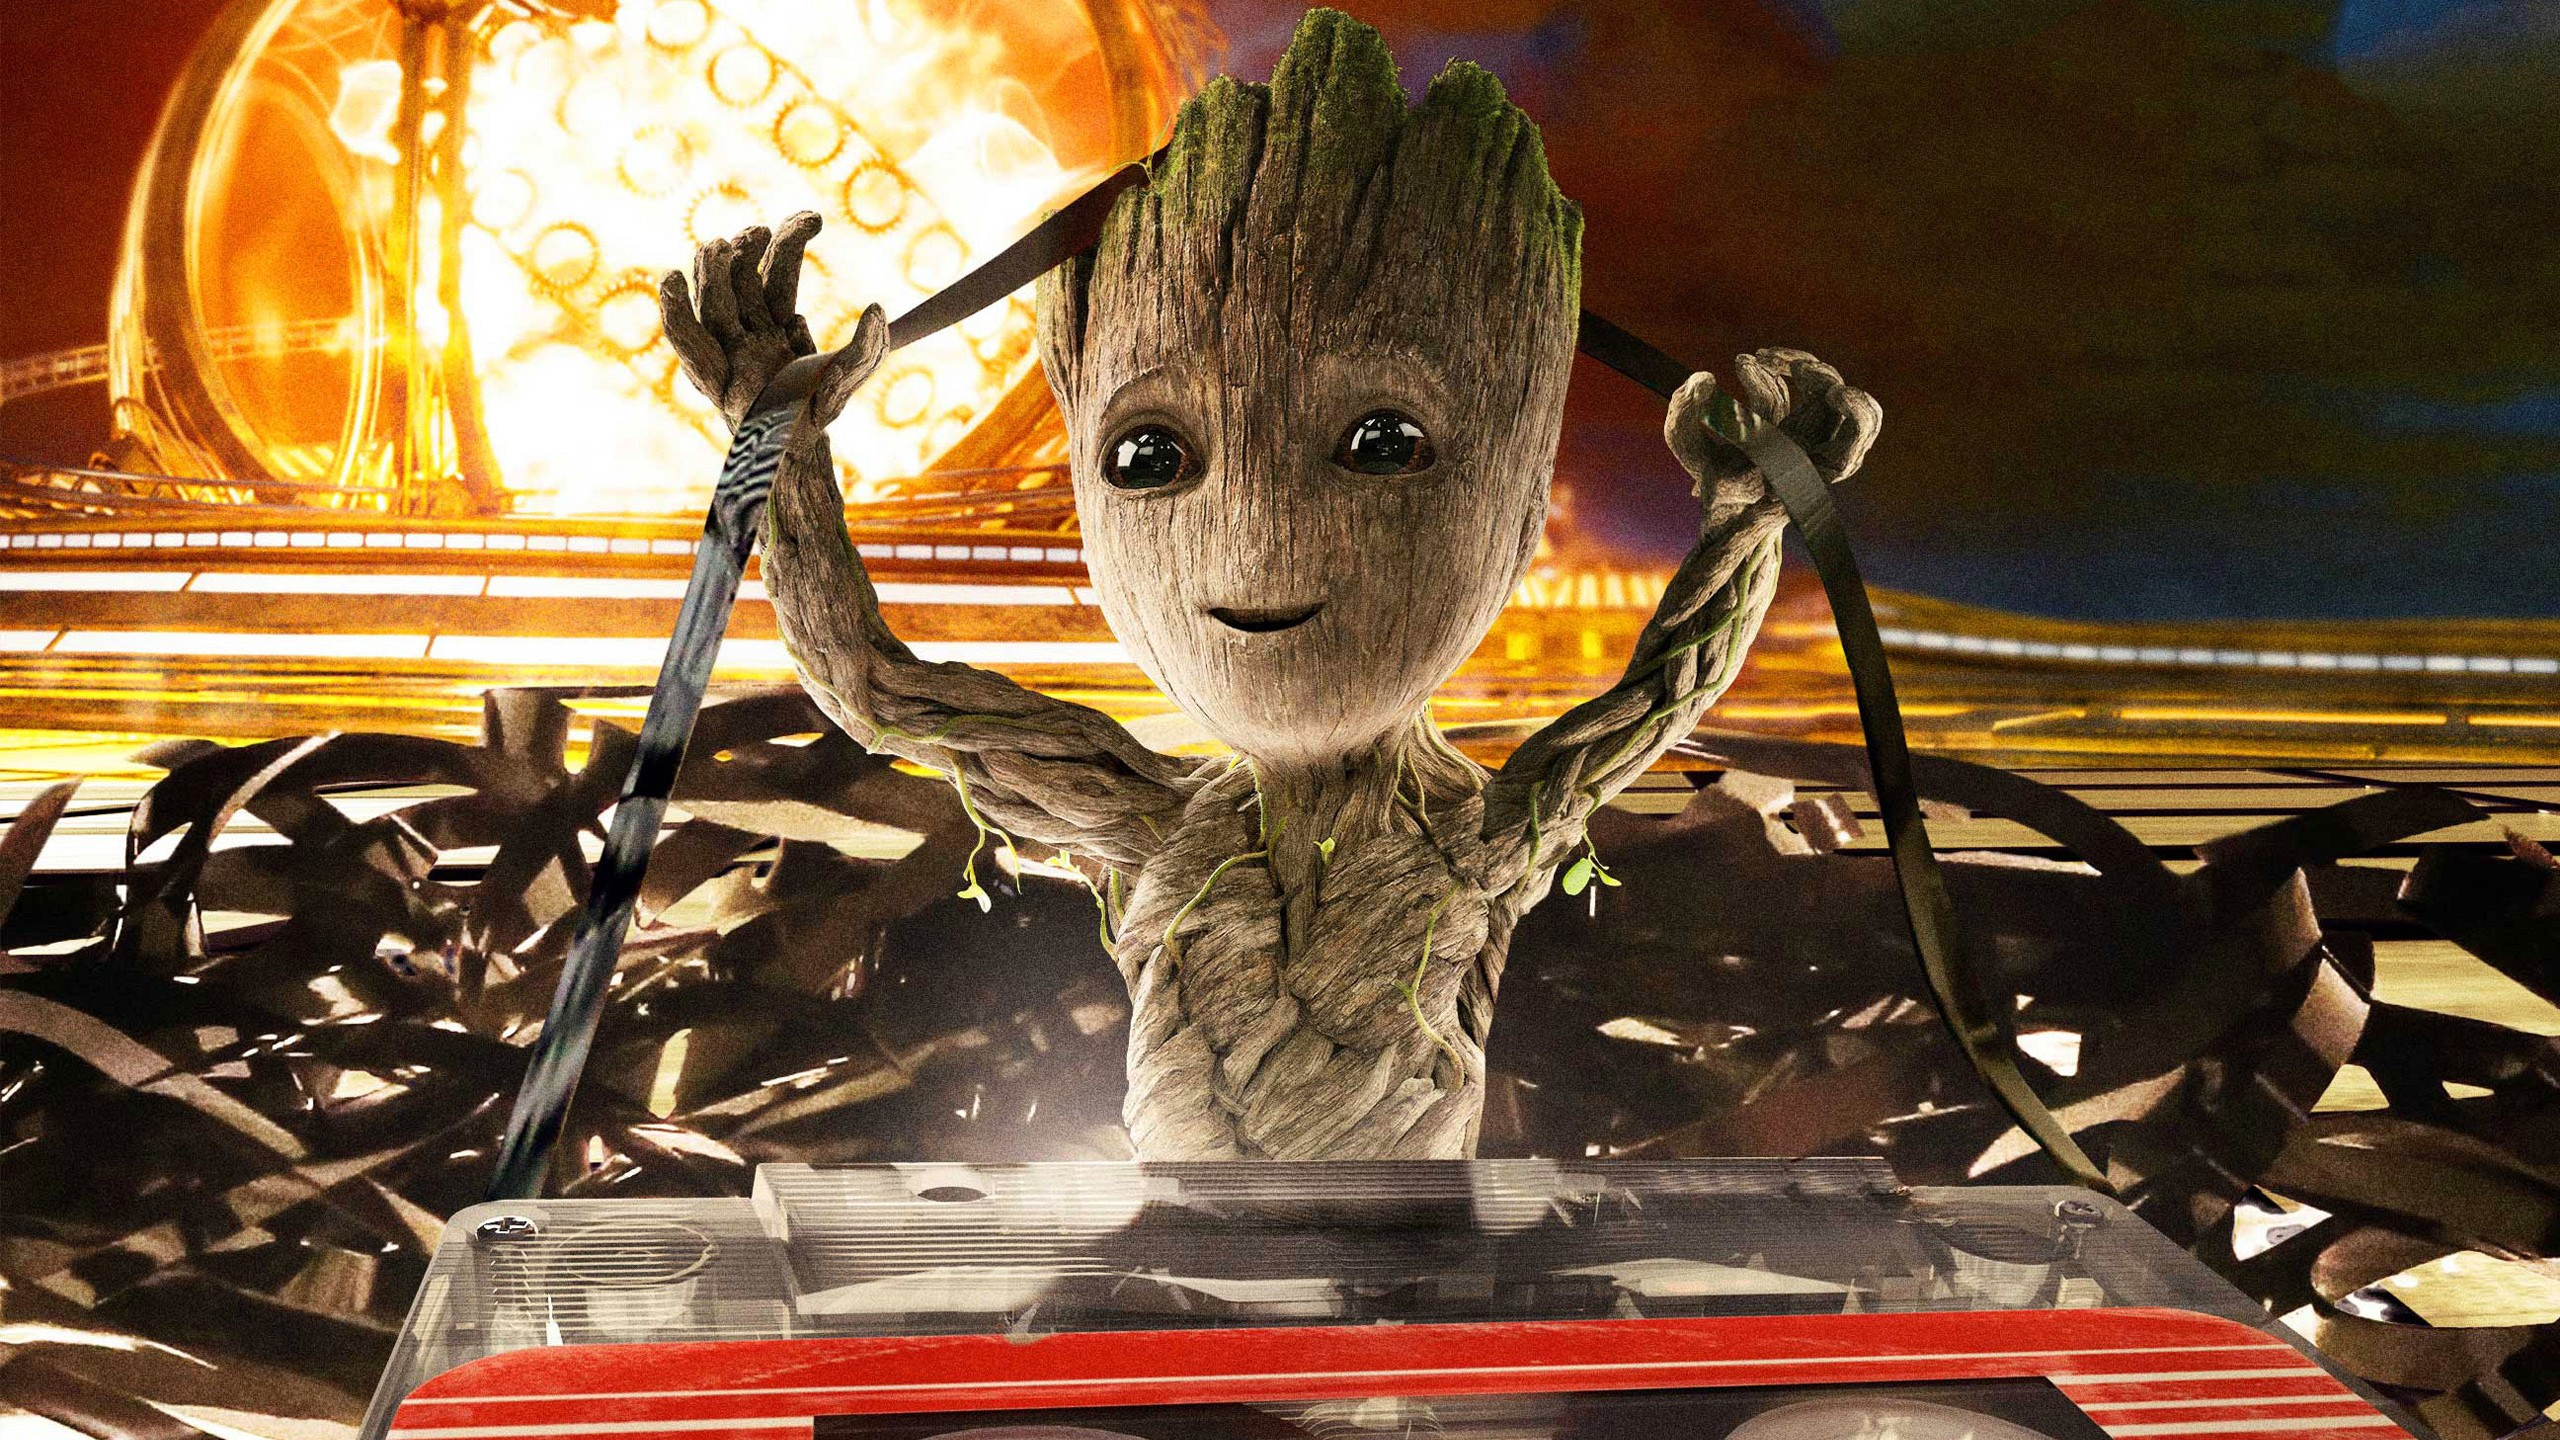 Windows 10 Wallpaper Hd 3d For Desktop Baby Groot Wallpapers Hd Wallpapers Id 20020